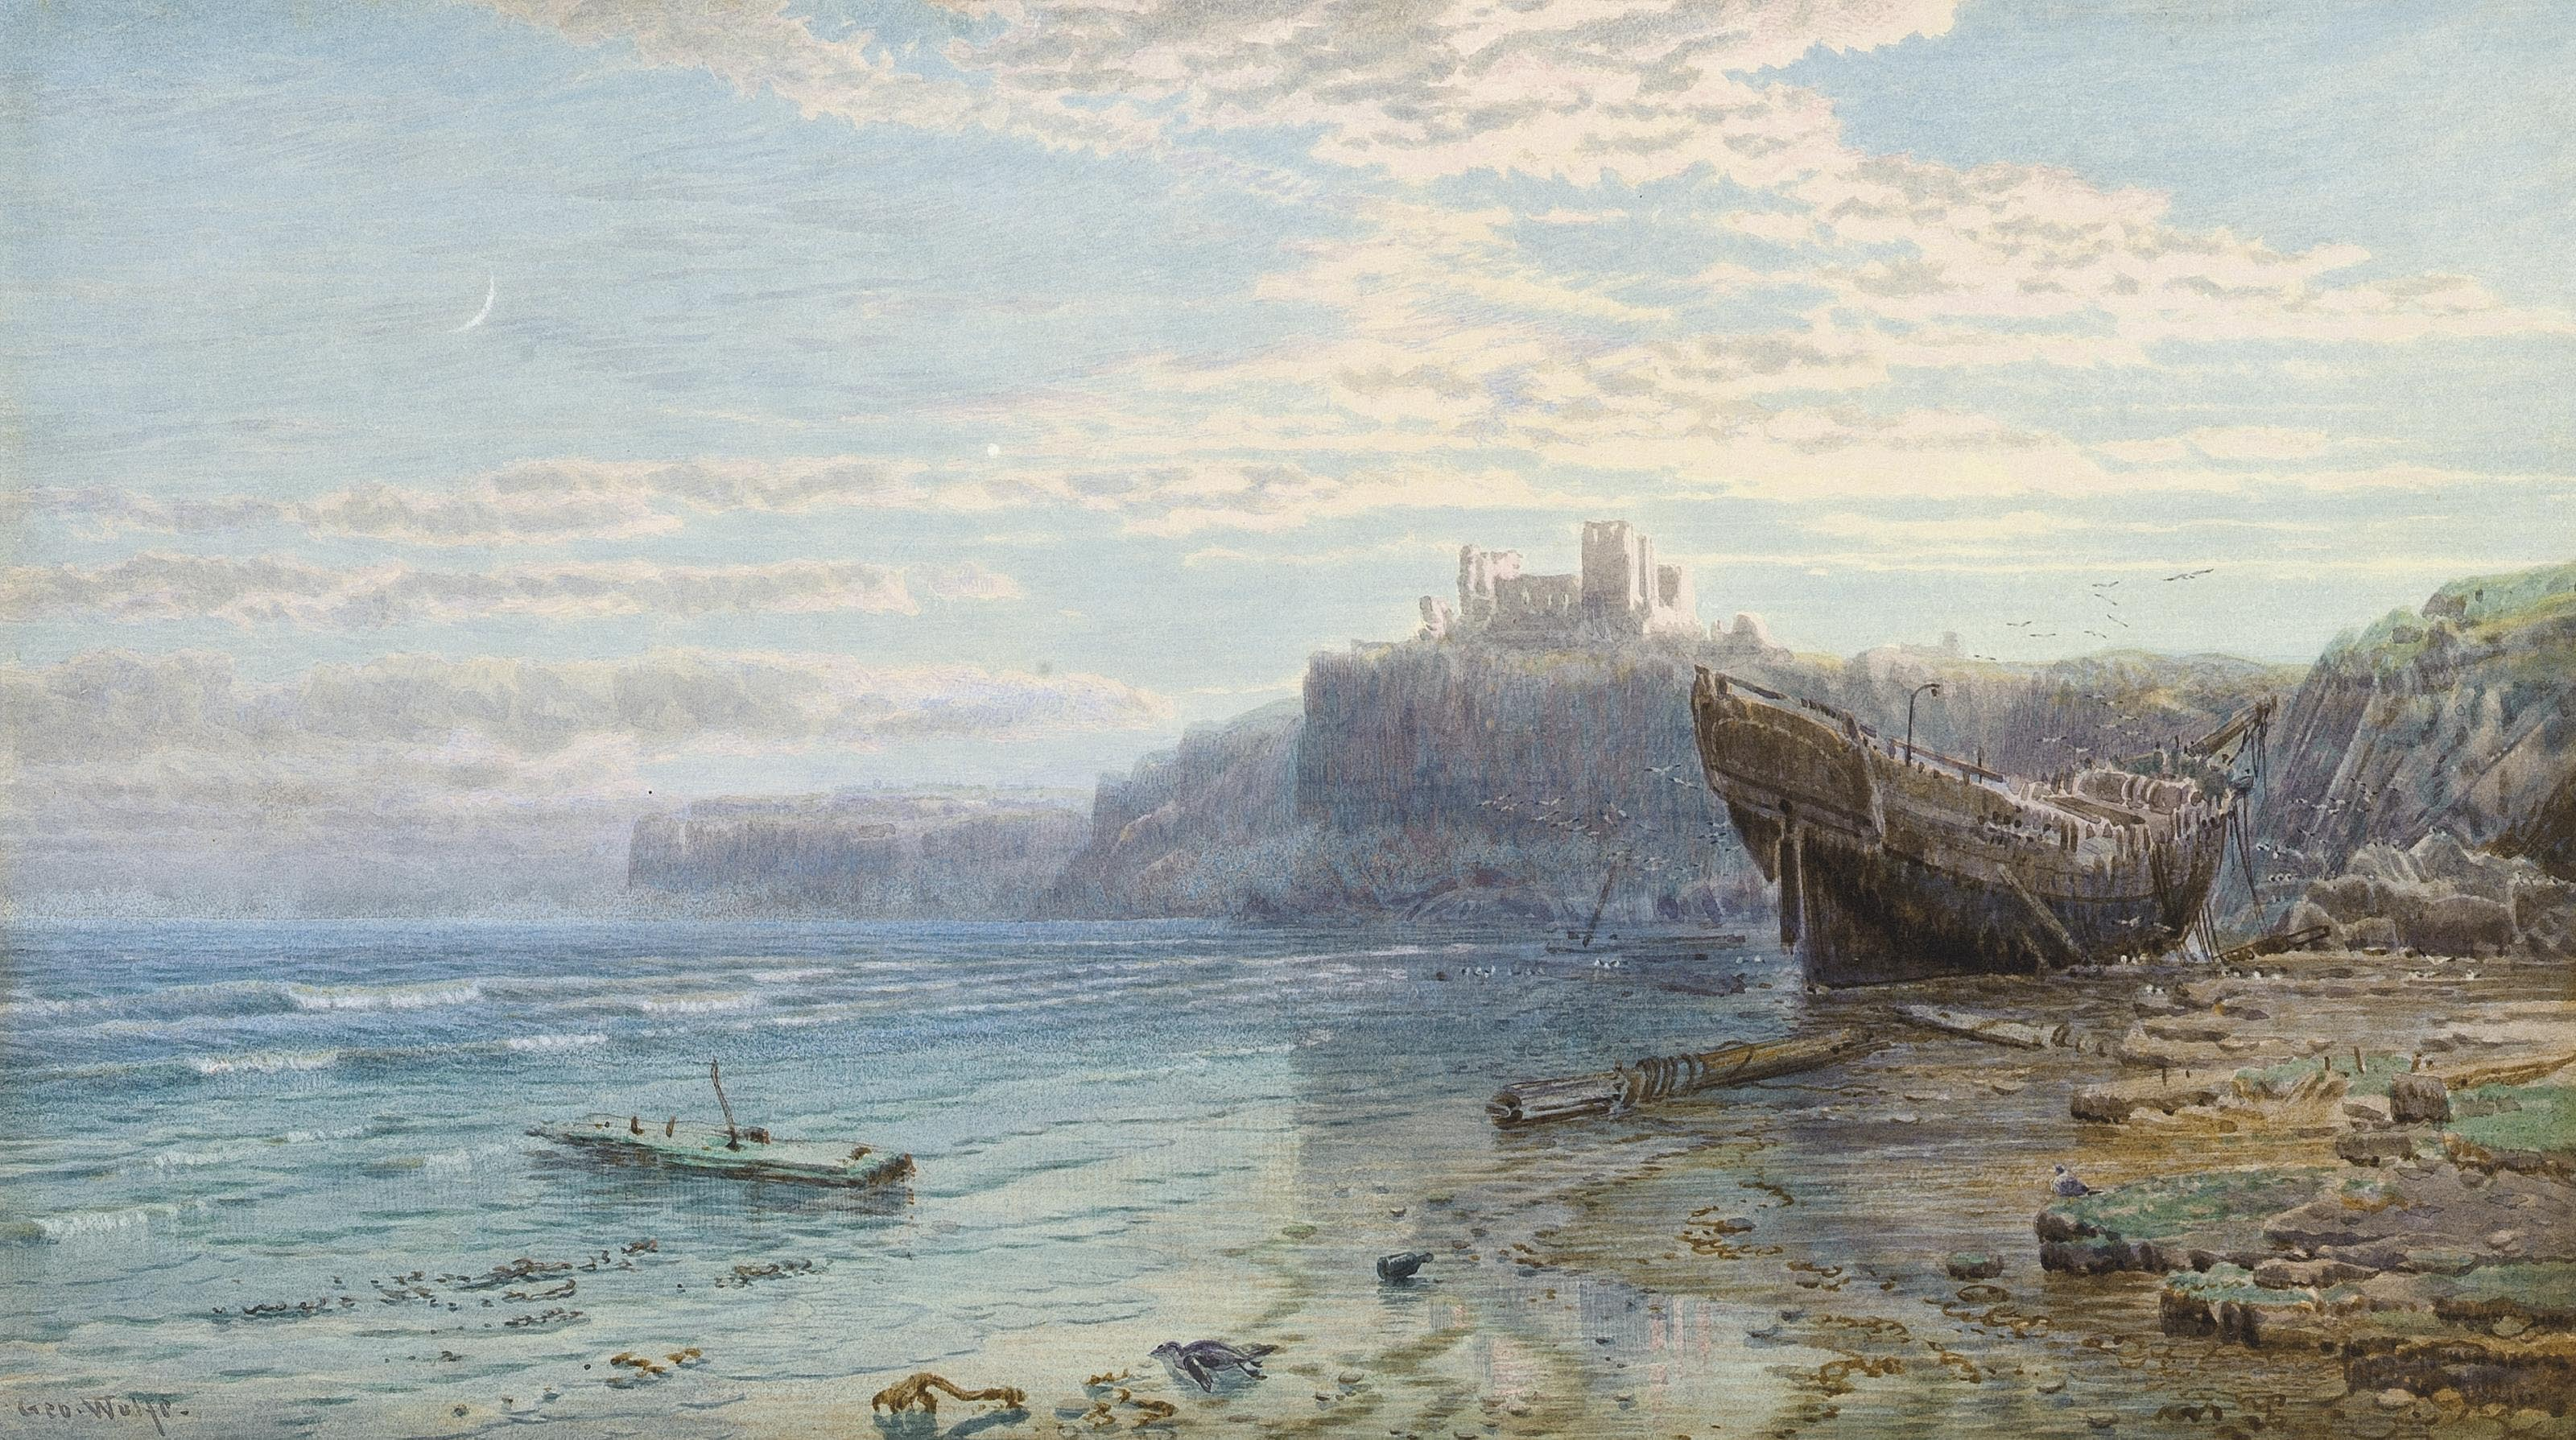 After the storm, Whitby